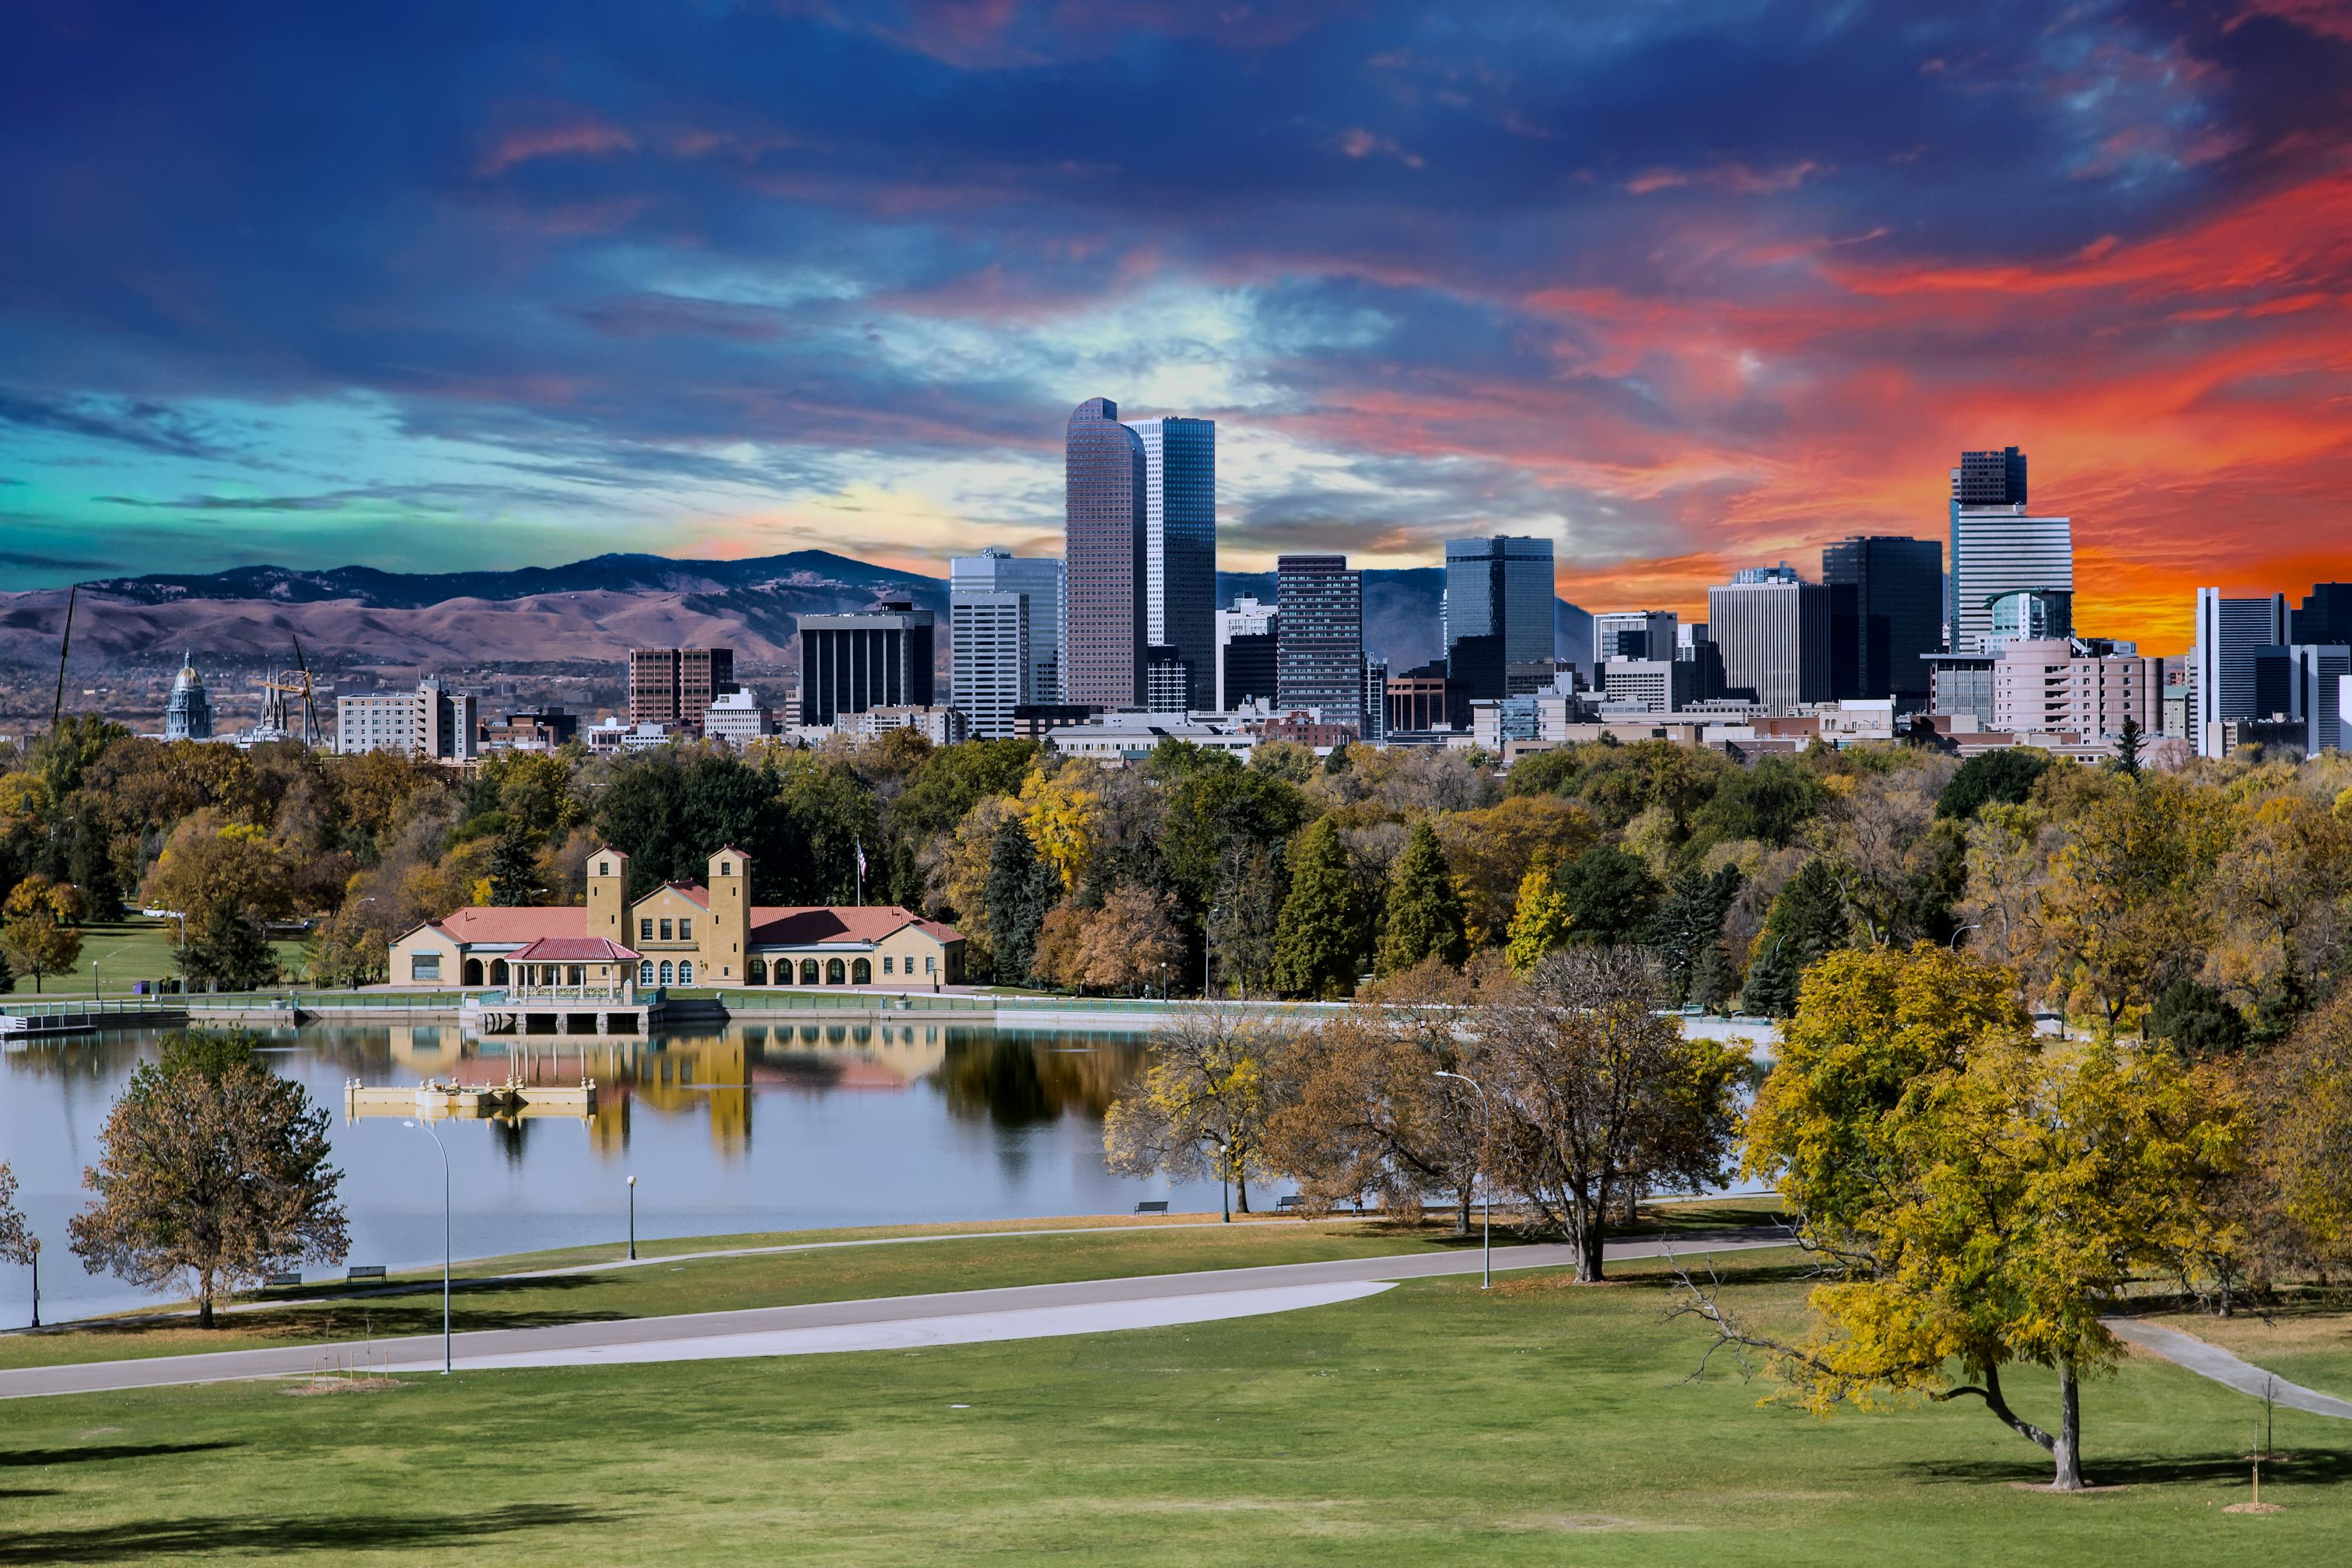 Monthly Car Rentals >> The Weather and Climate in Denver